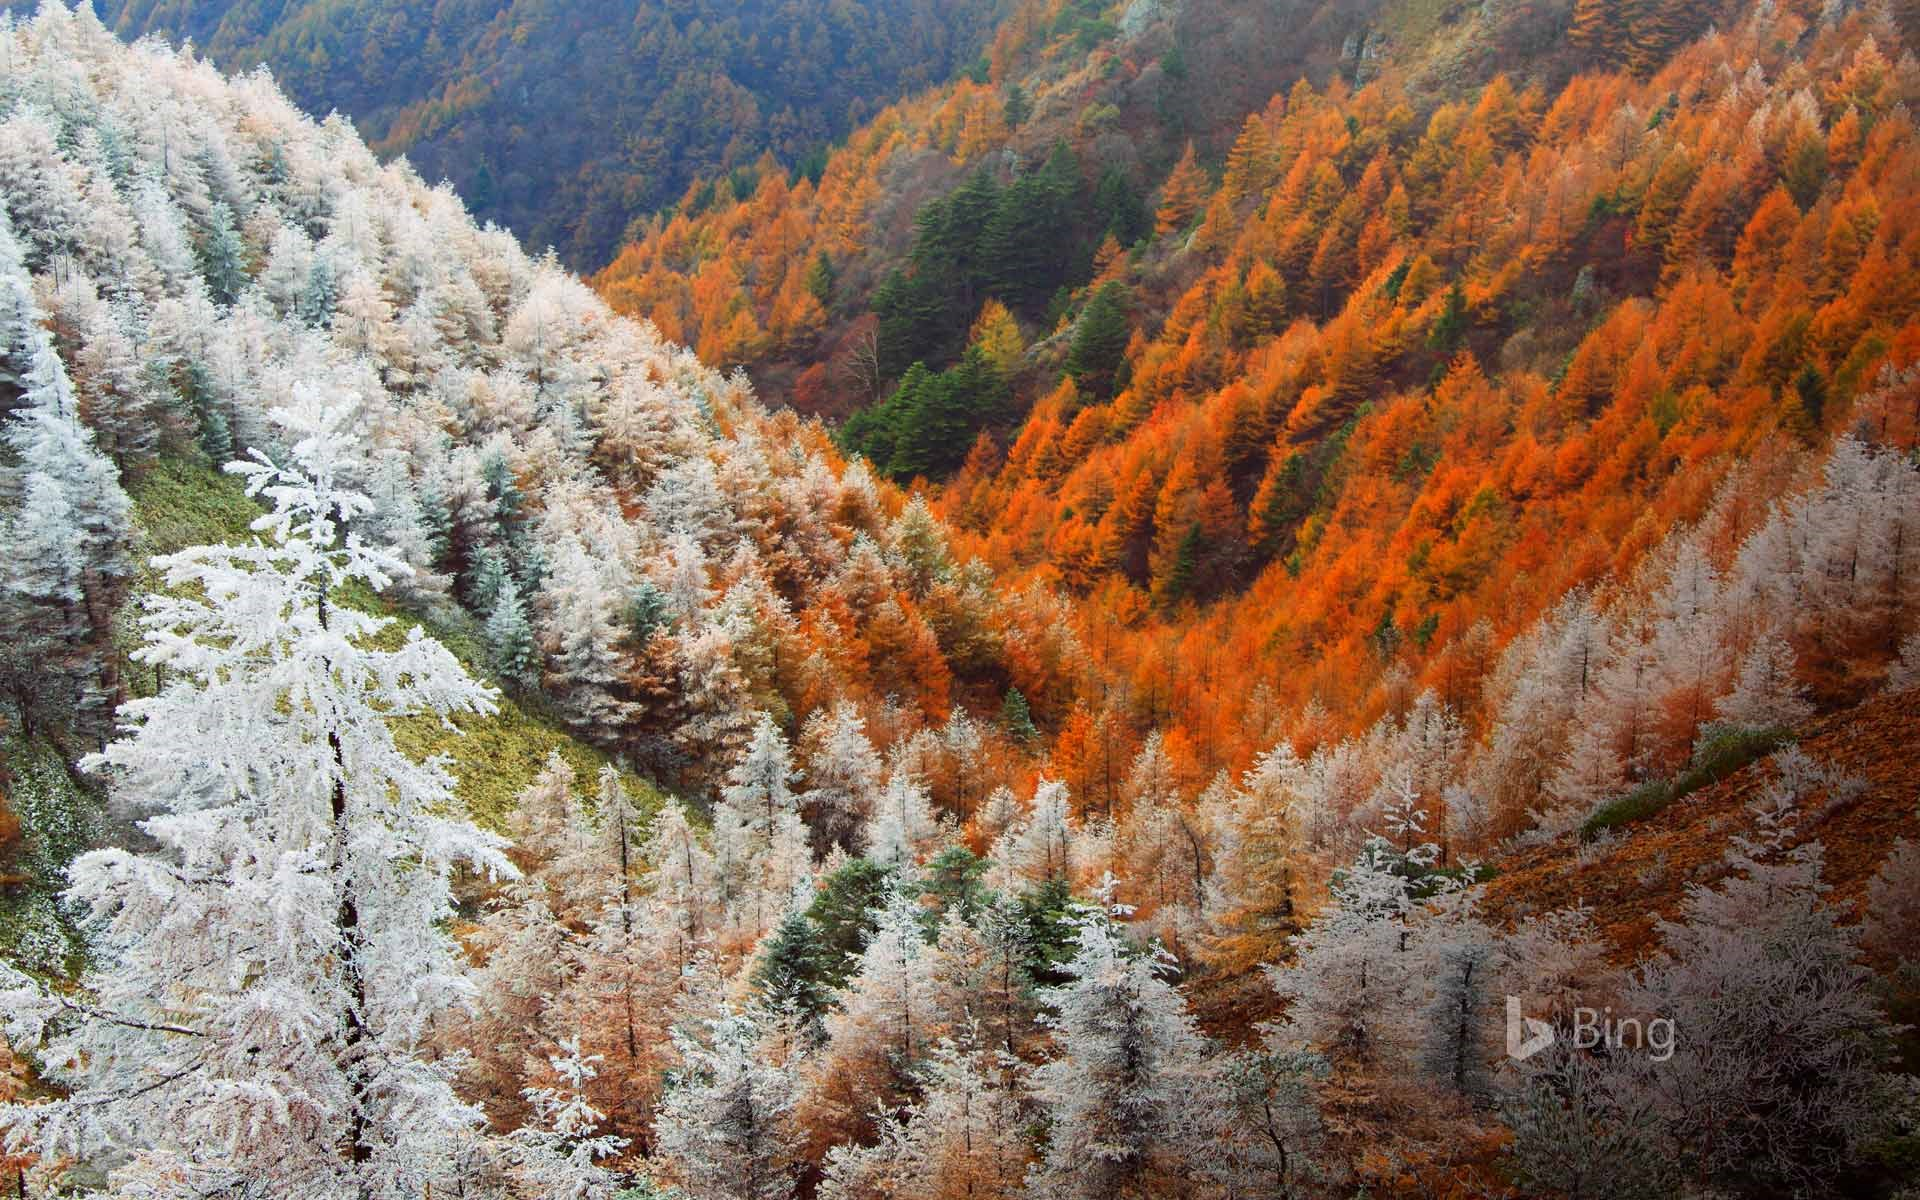 Larch forest near Matsumoto, Japan